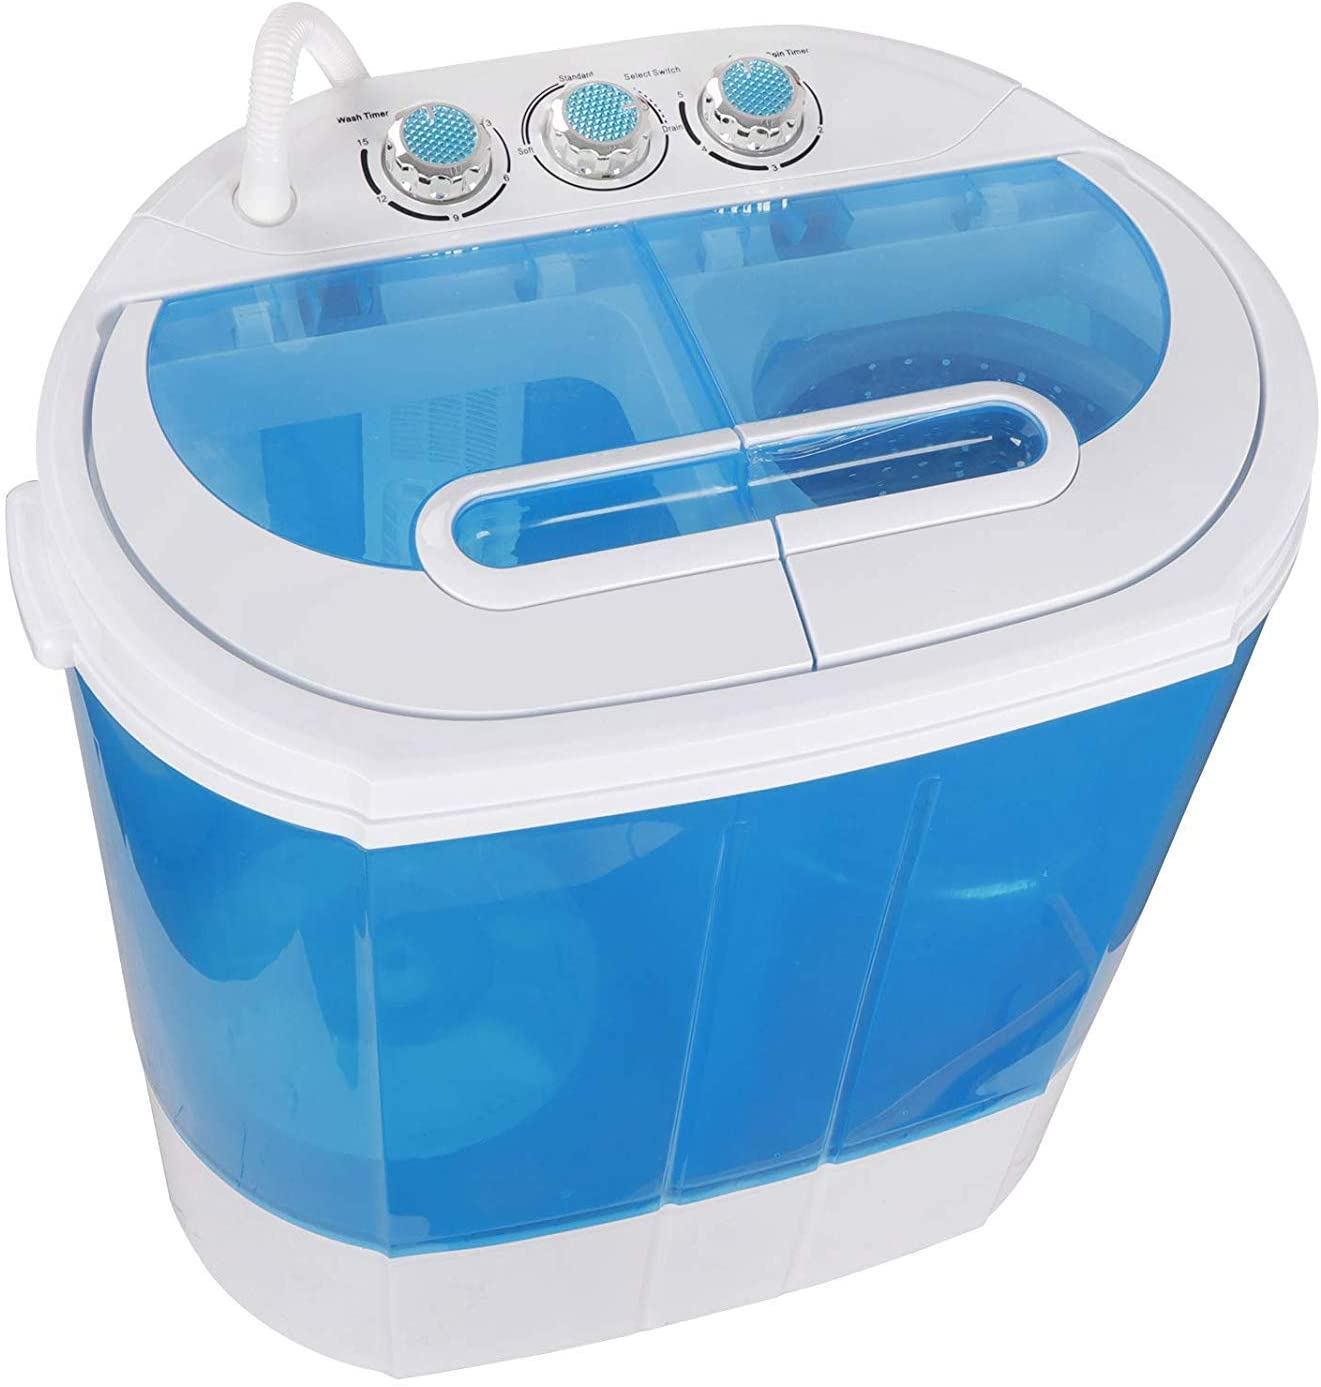 B07LBRGS48 HomGarden 10lbs Portable Washing Machine with Twin Tub Electric Compact Washing Machine Mini Laundry w/Washer&Spinner, Gravity Drain Pump and Drain Hose 71qZeRK3p-L.SL1500_